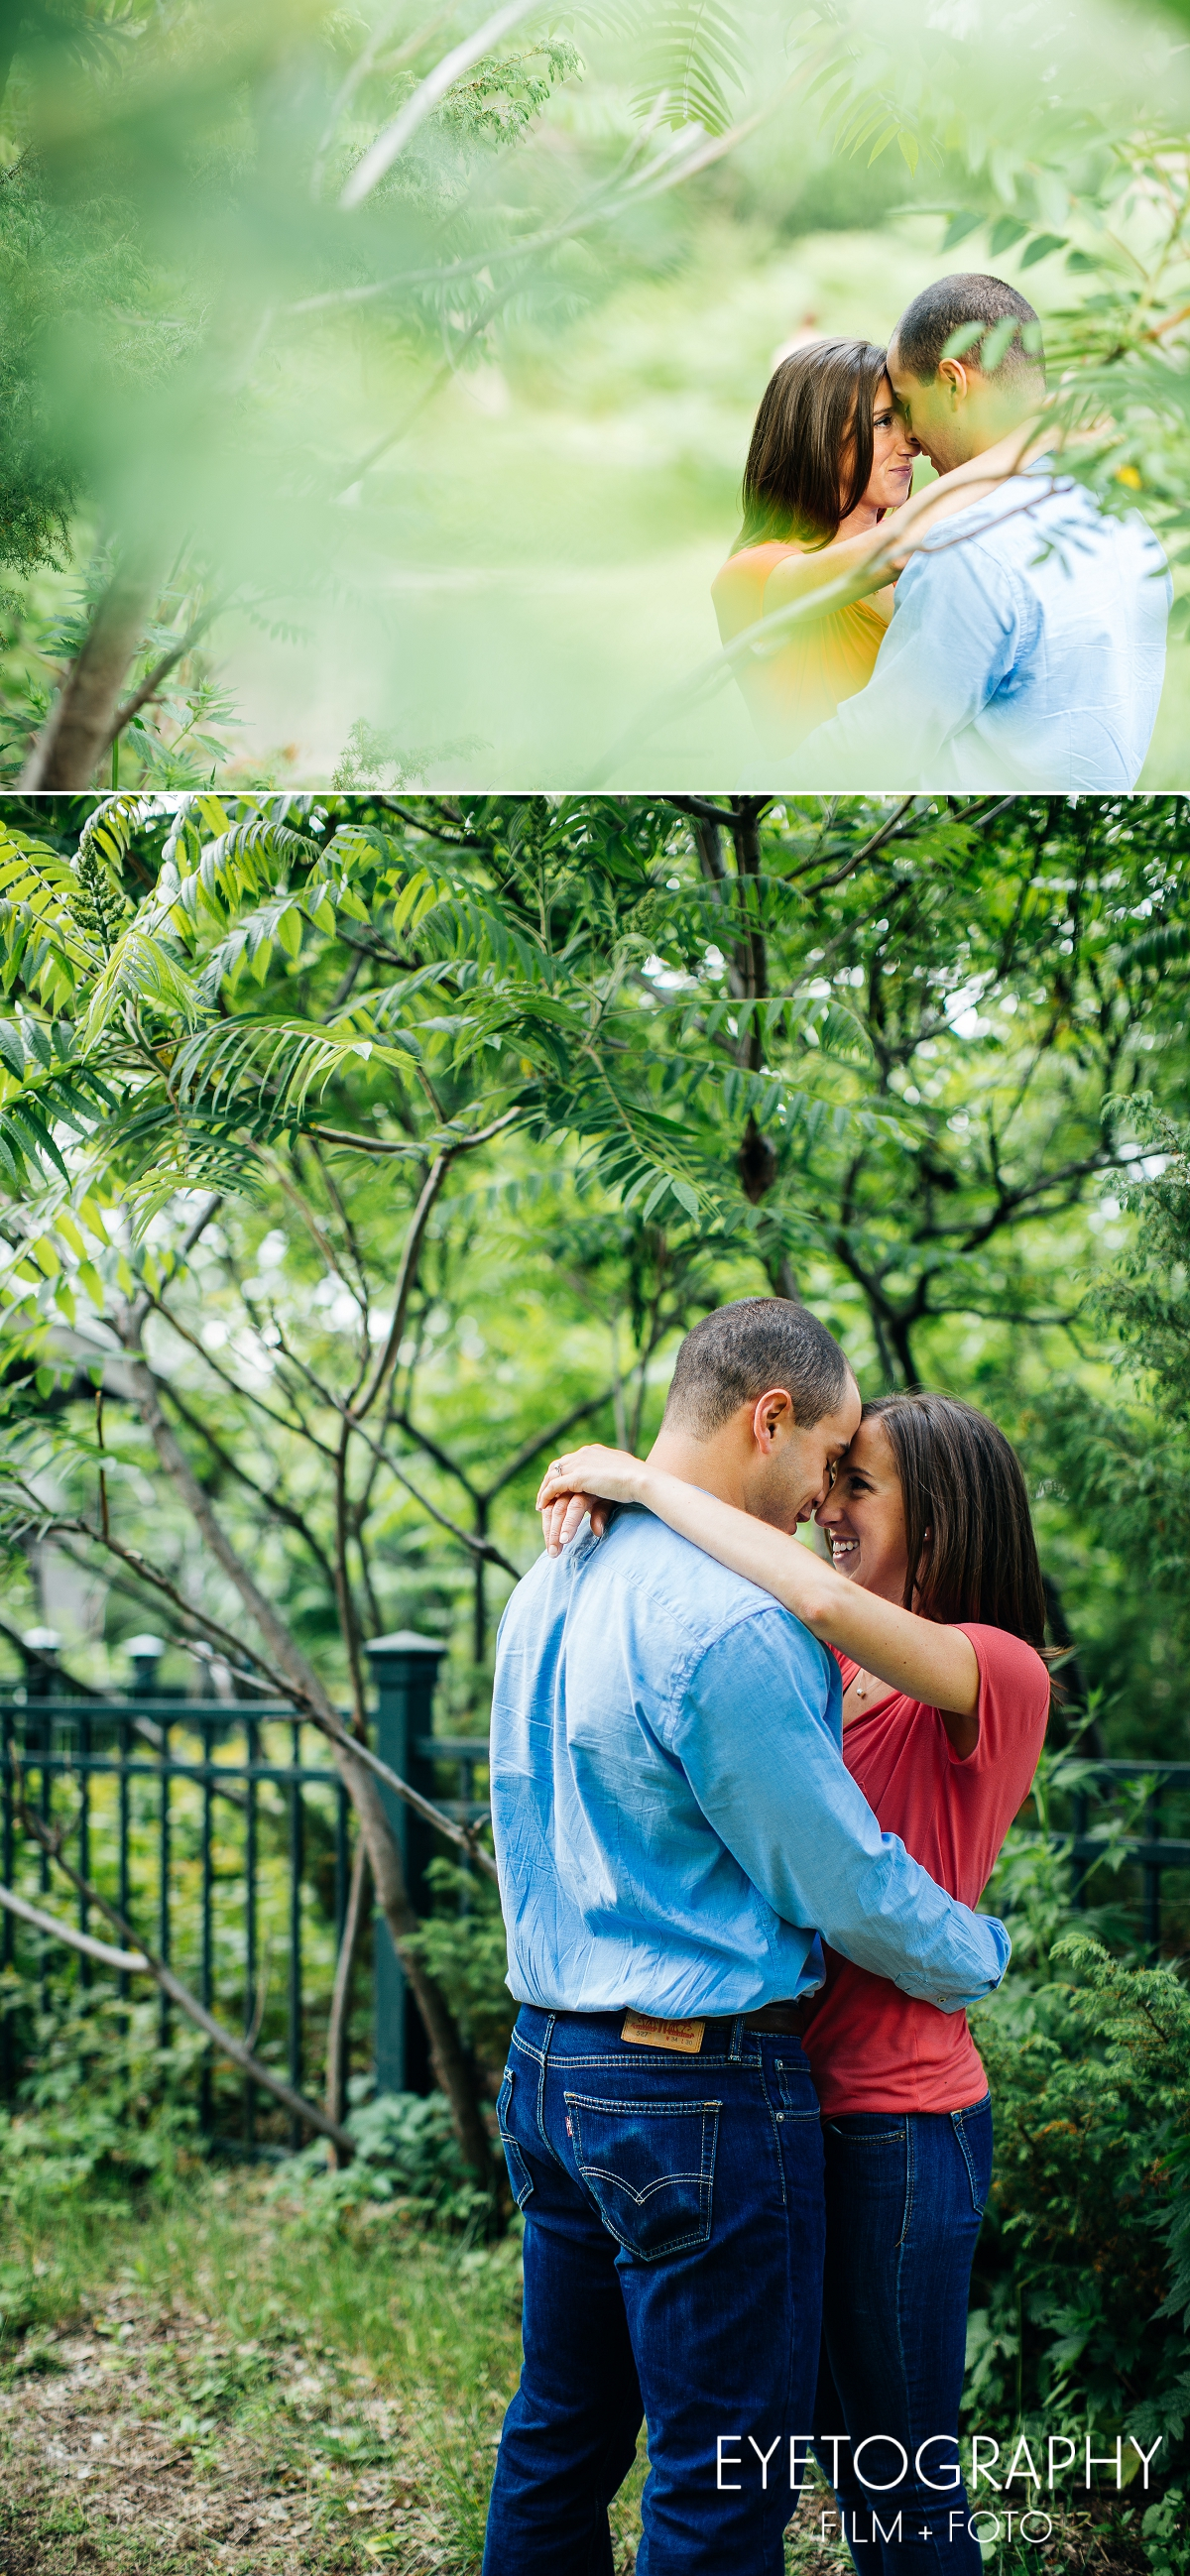 Minnehaha Engagement Session - Shot by Eyetography 2